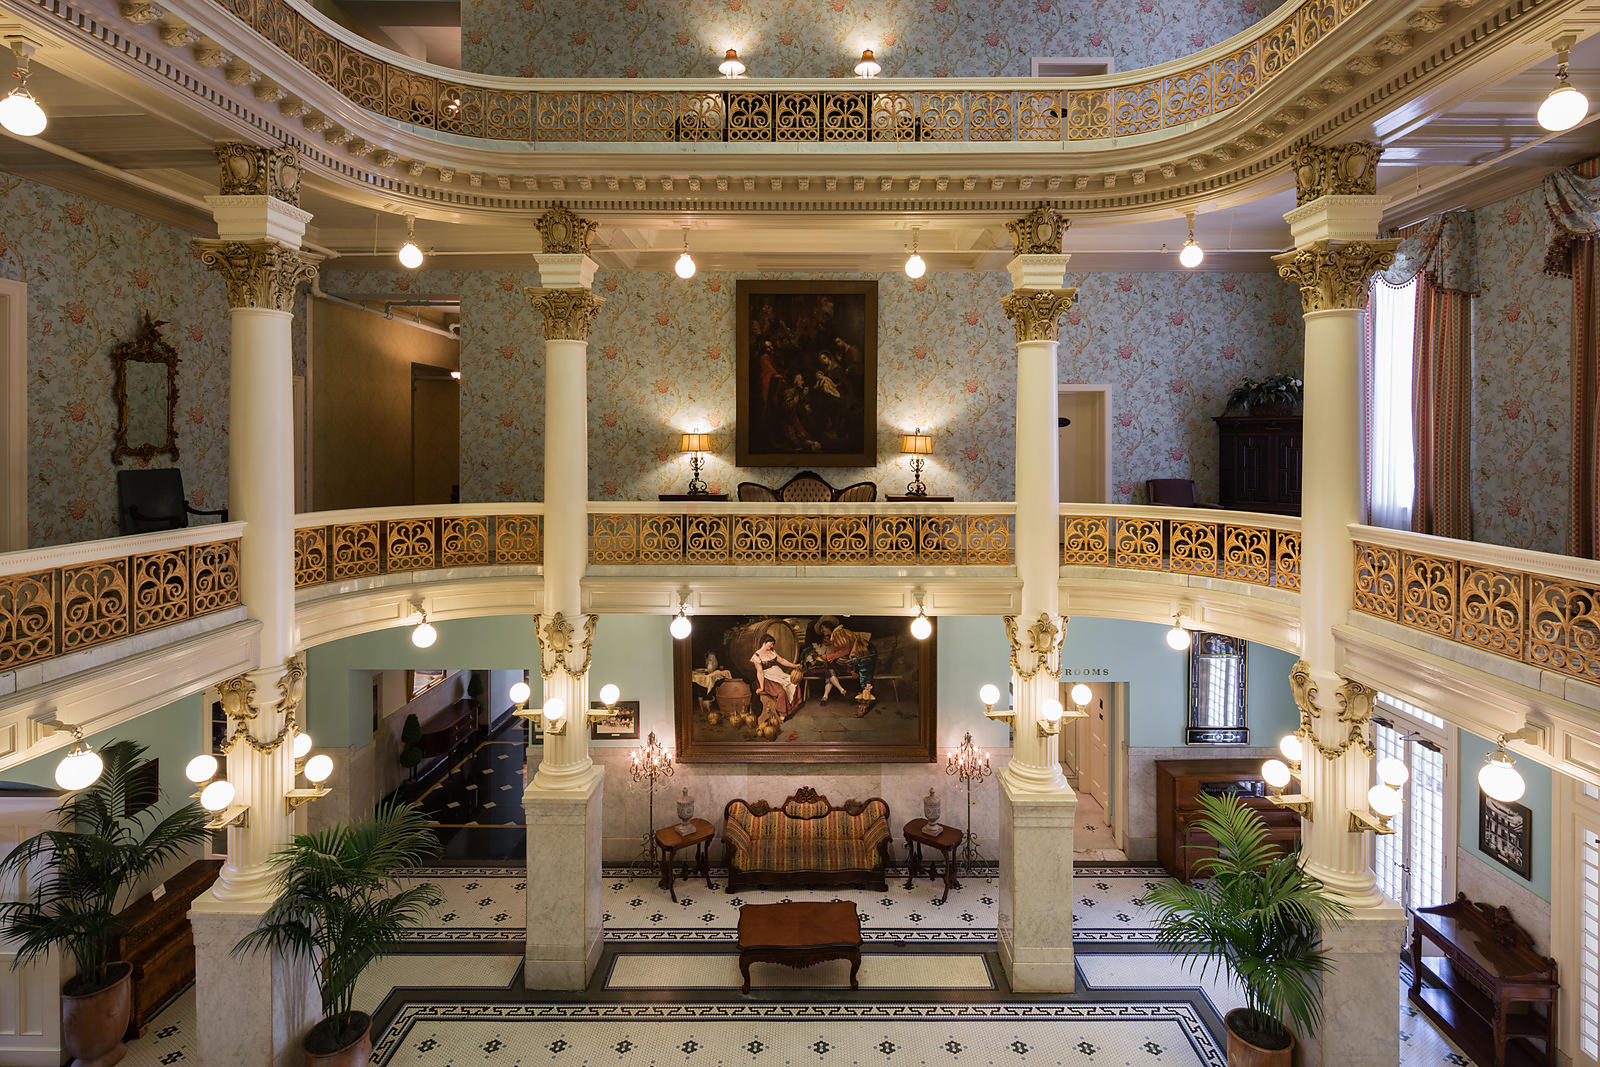 The Atrium of the Historic Menger Hotel Built in 1859